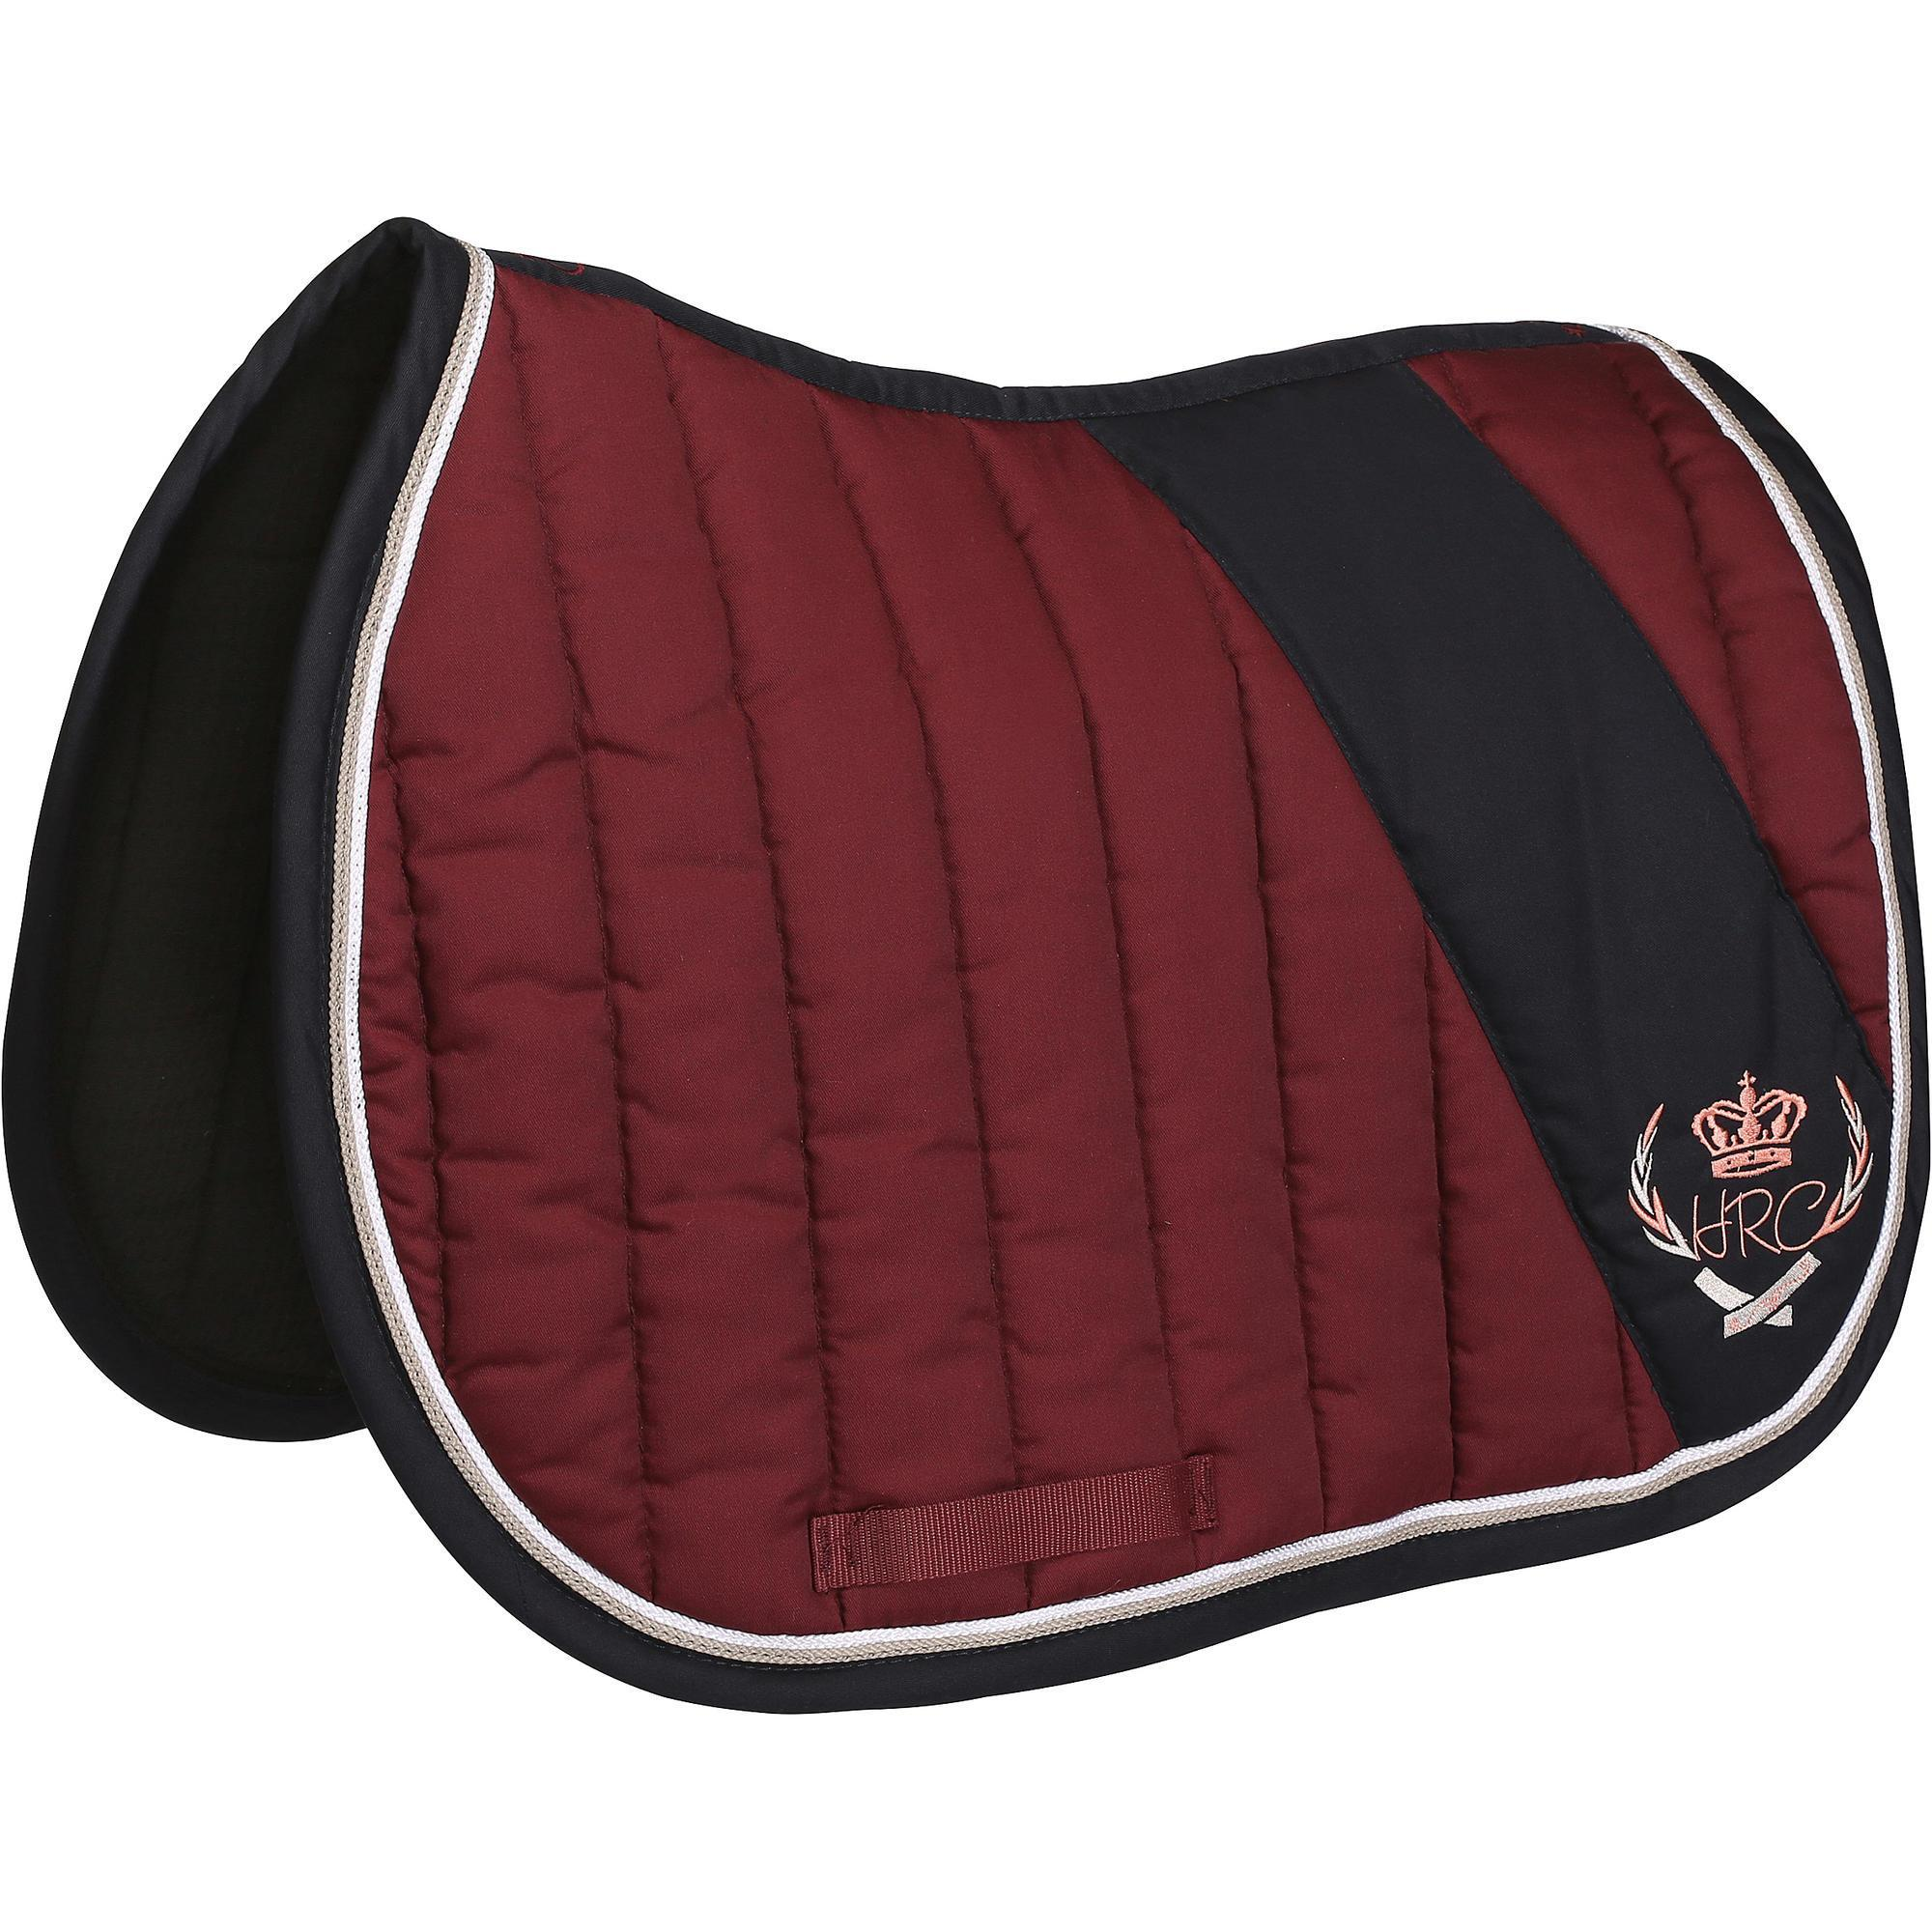 Tapis de selle quitation cheval jump bordeaux fouganza - Tapis decathlon equitation ...